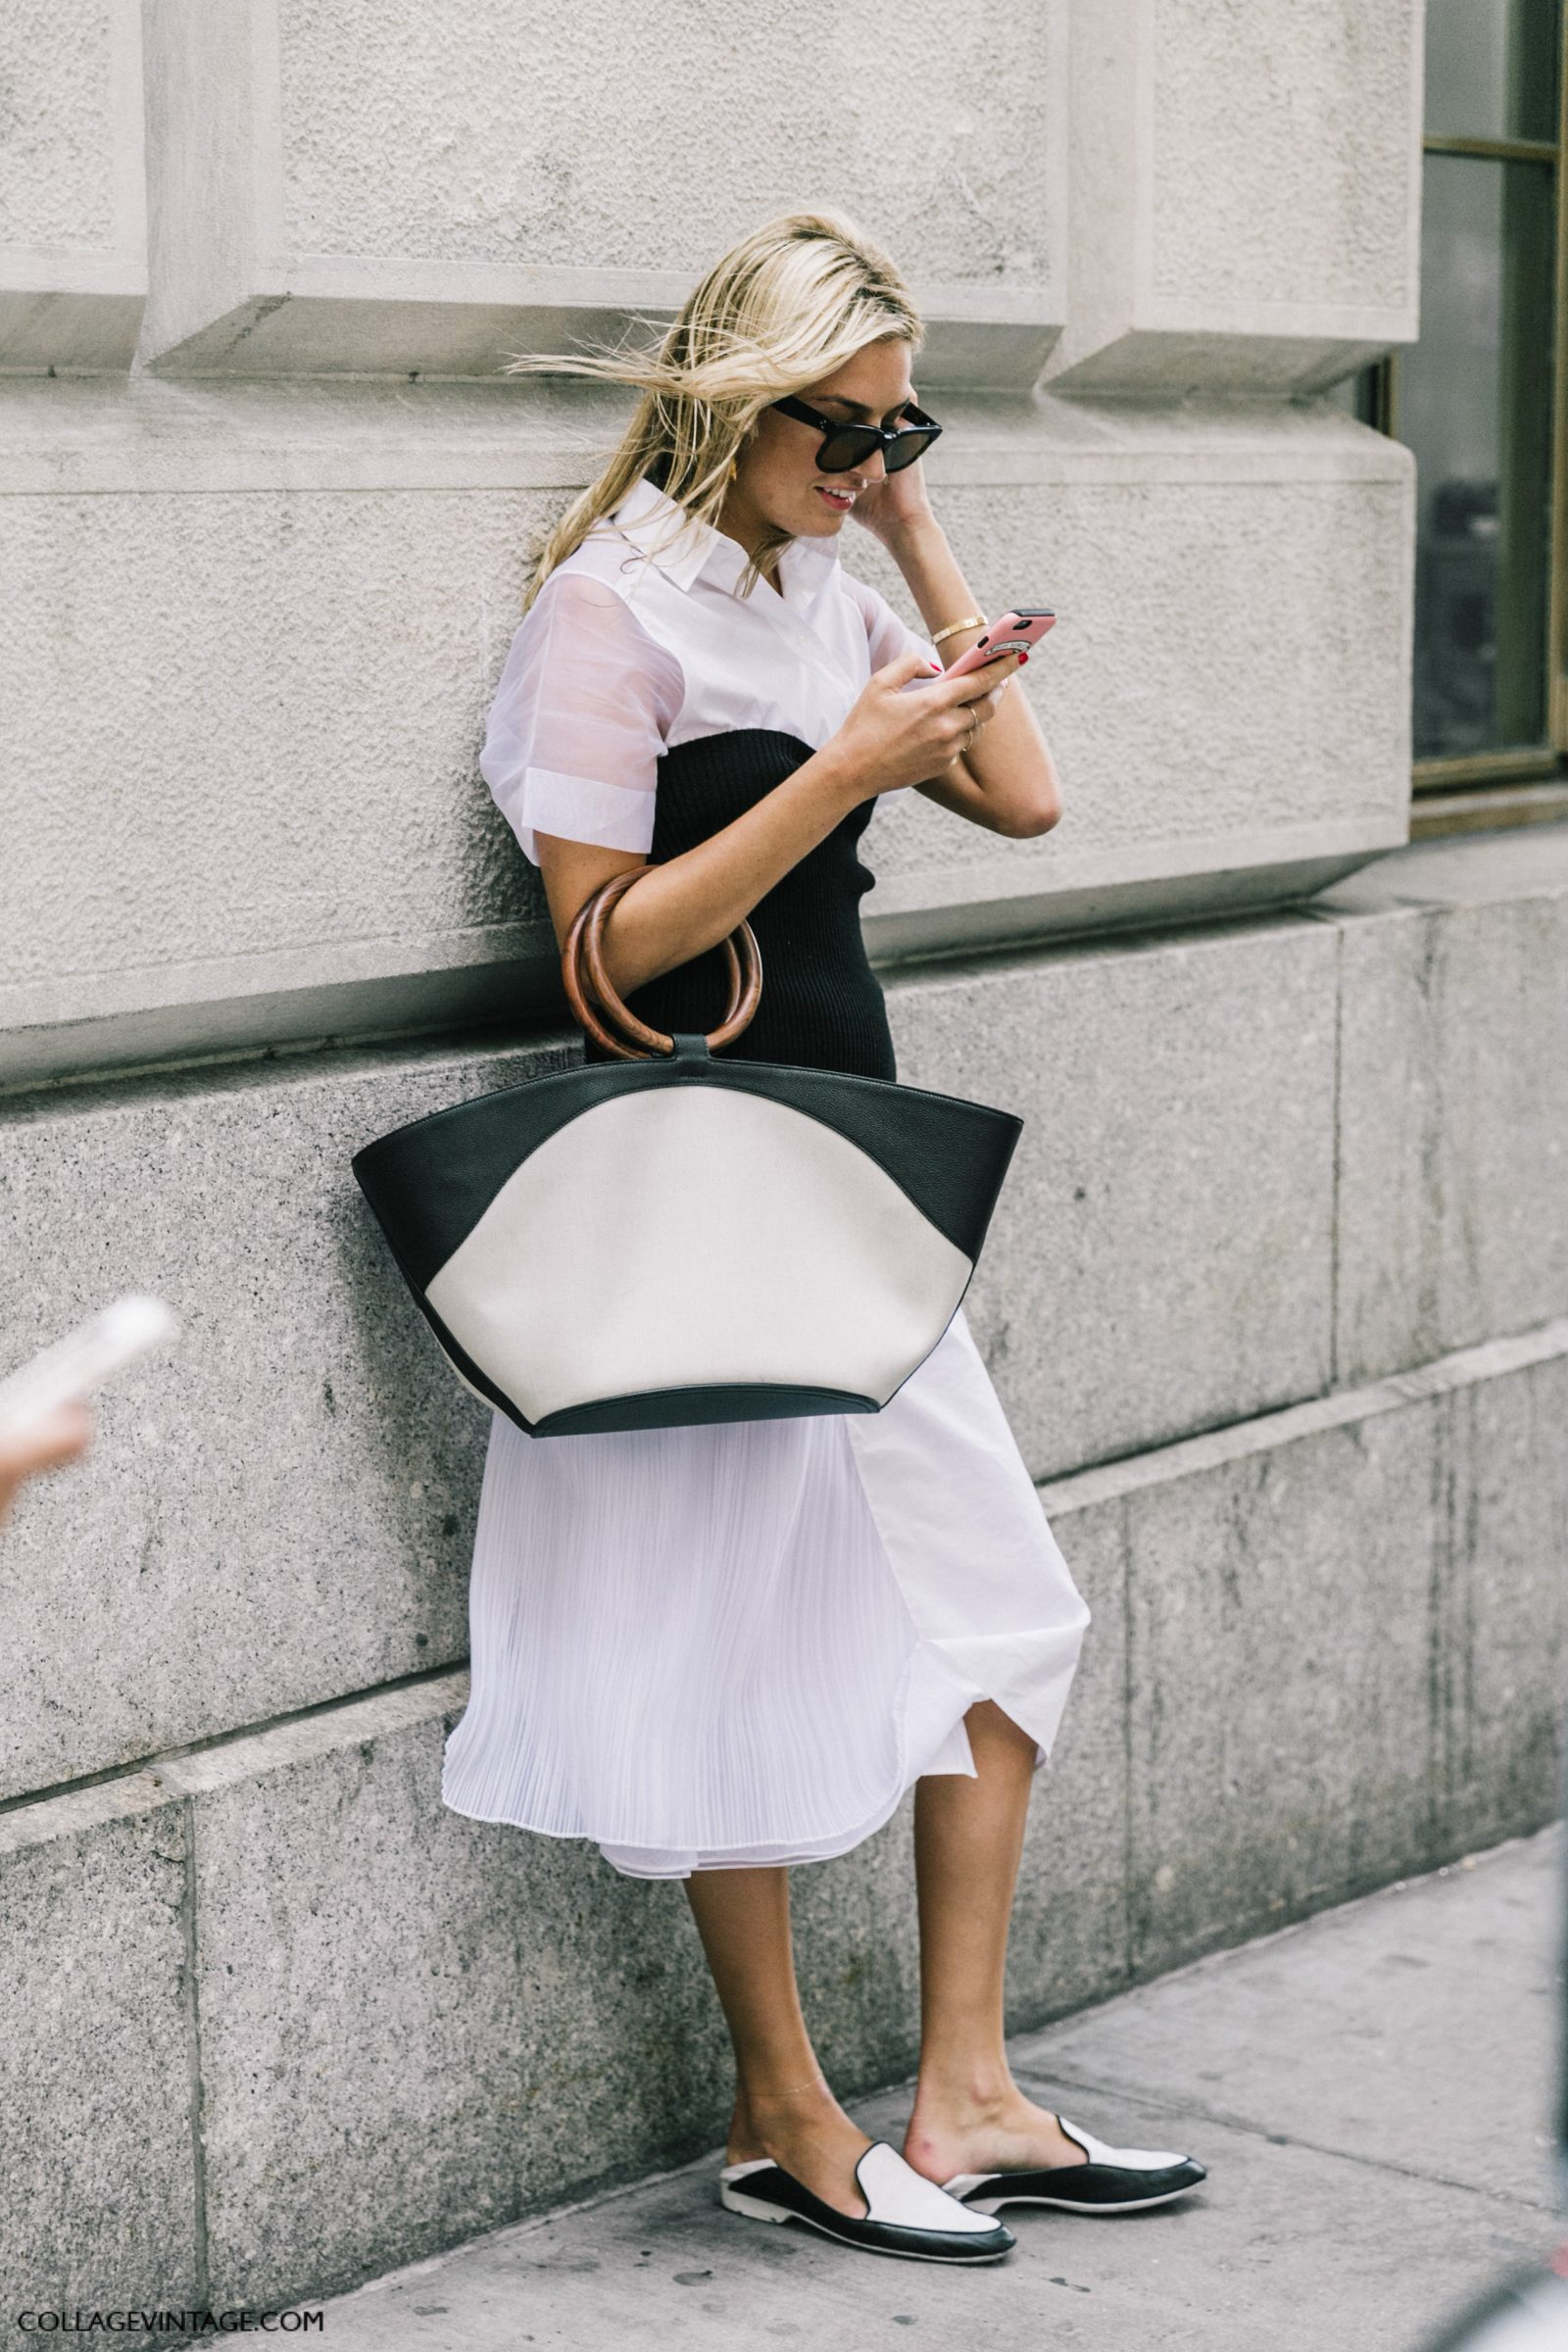 nyfw-new_york_fashion_week_ss17-street_style-outfits-collage_vintage-vintage-victoria_beckham-58